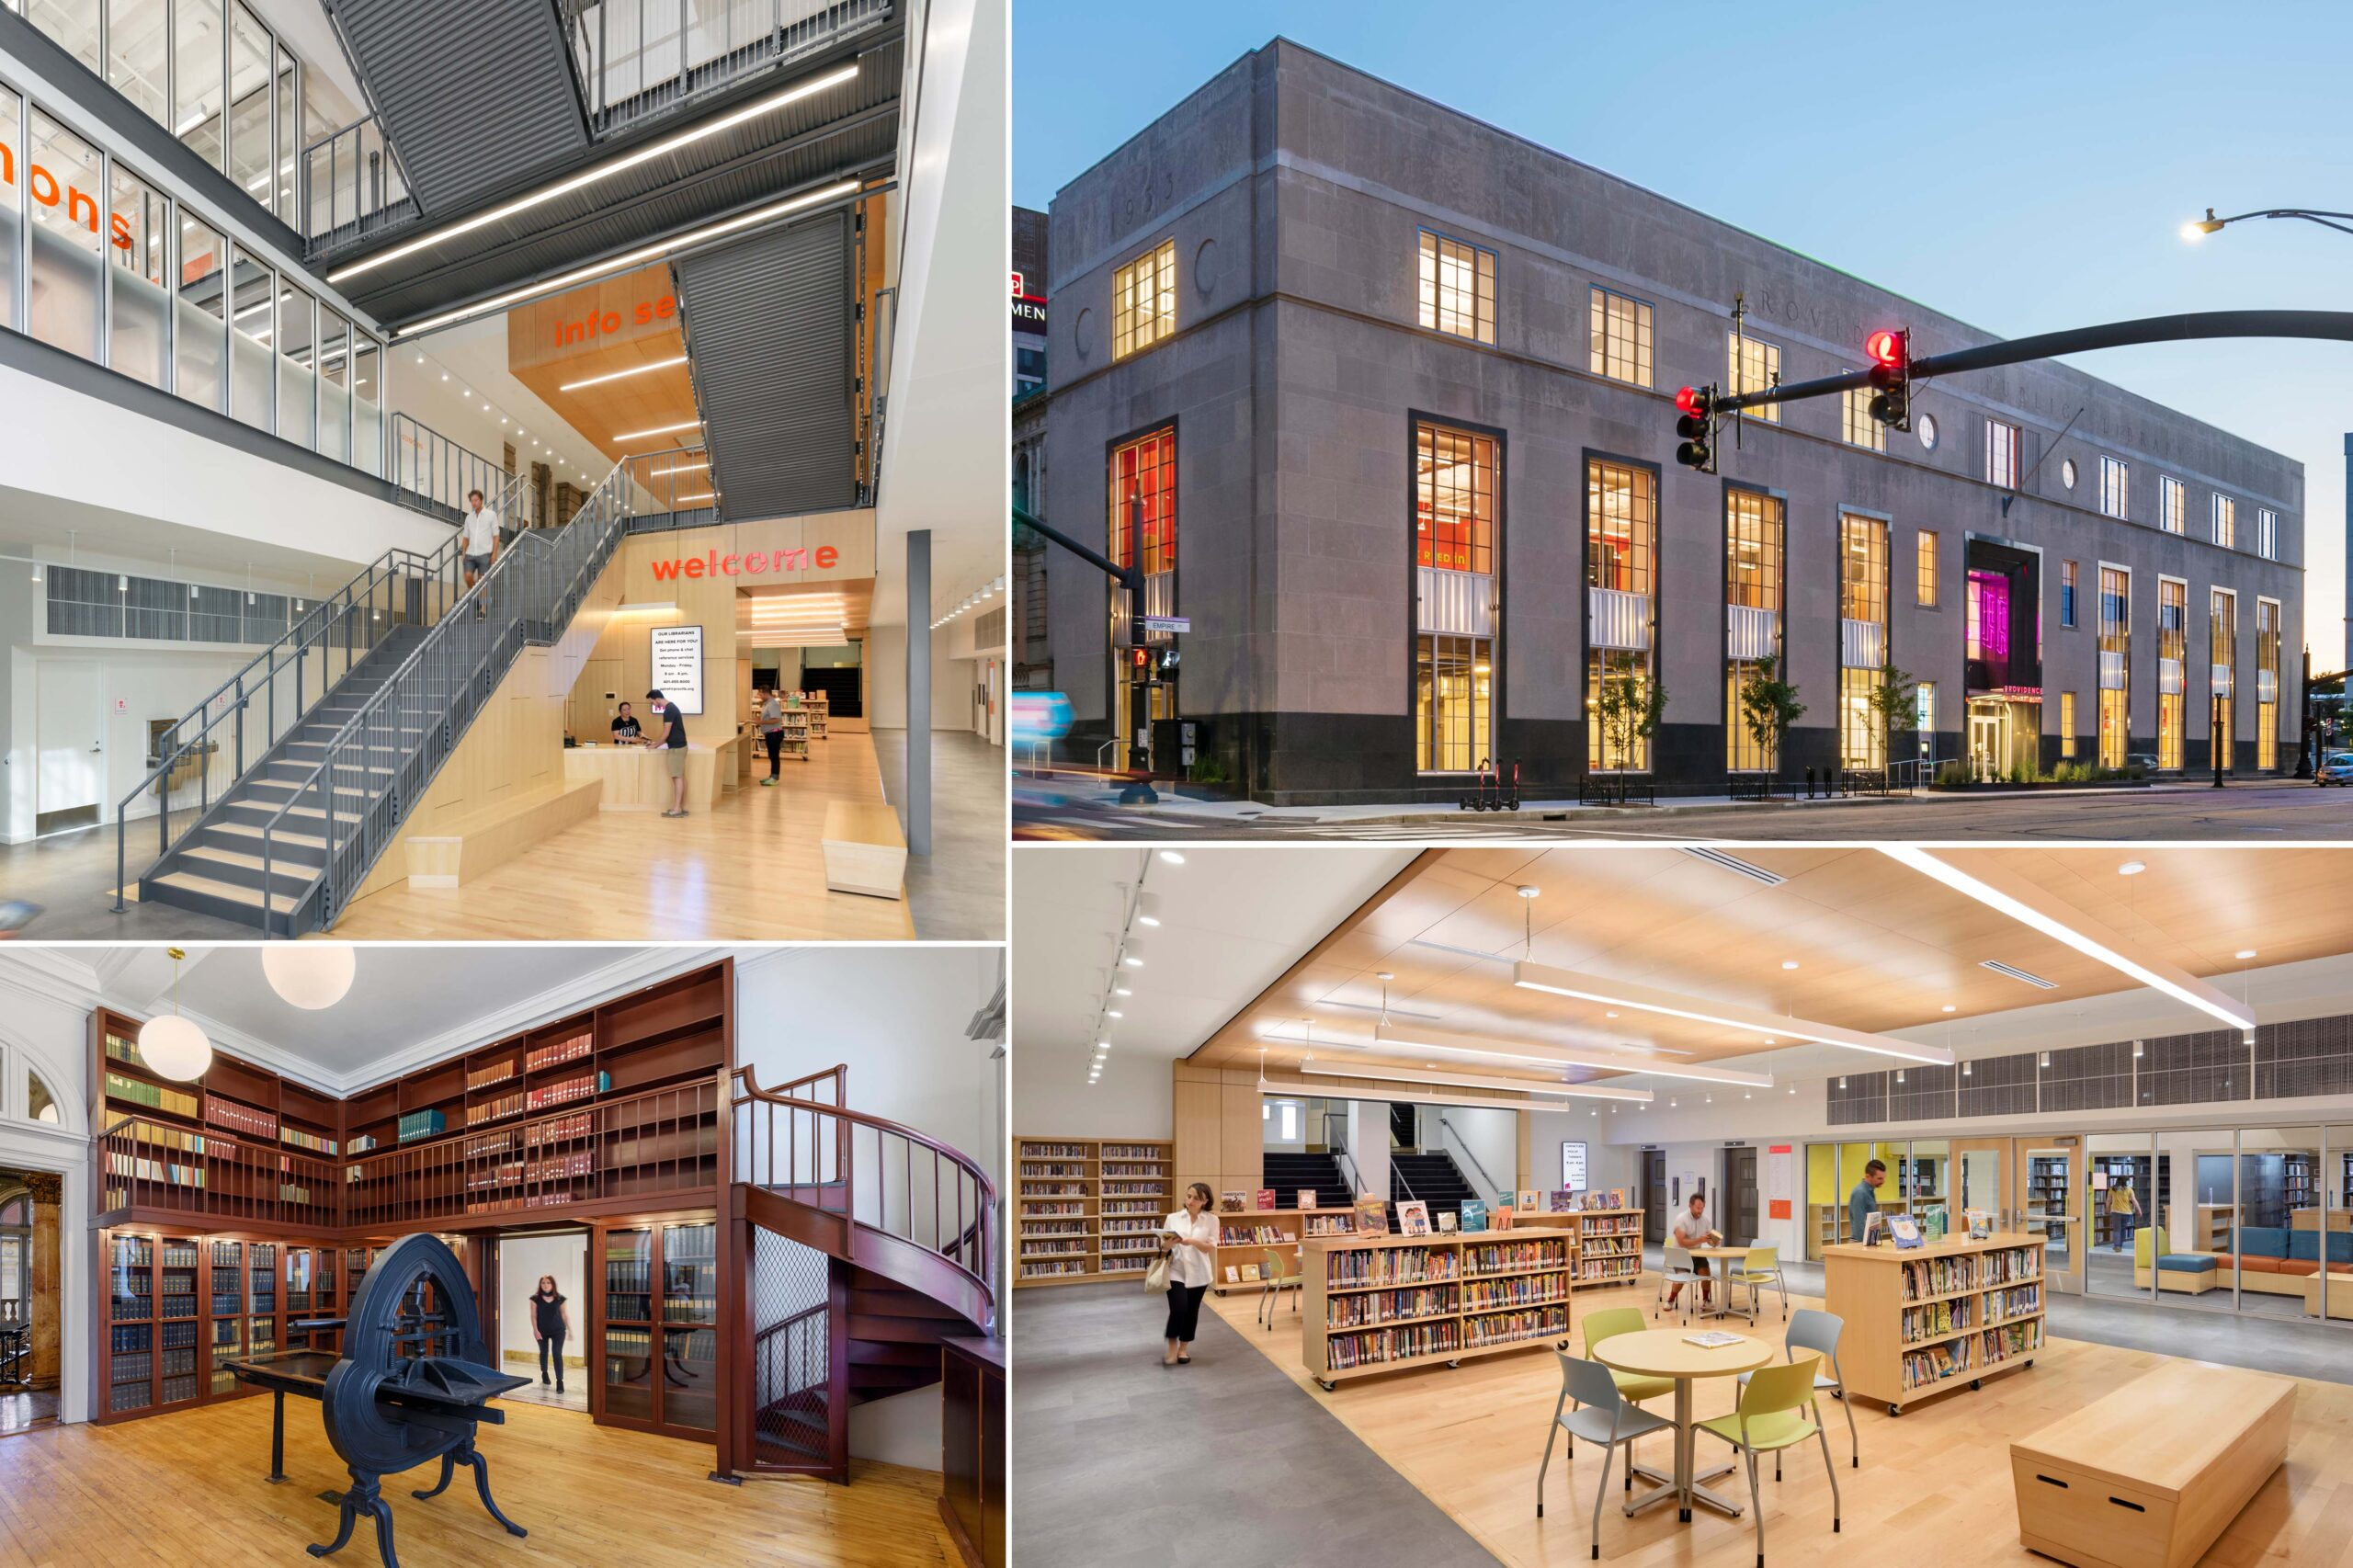 Providence Public Library, 21st Century Library, BOND Building